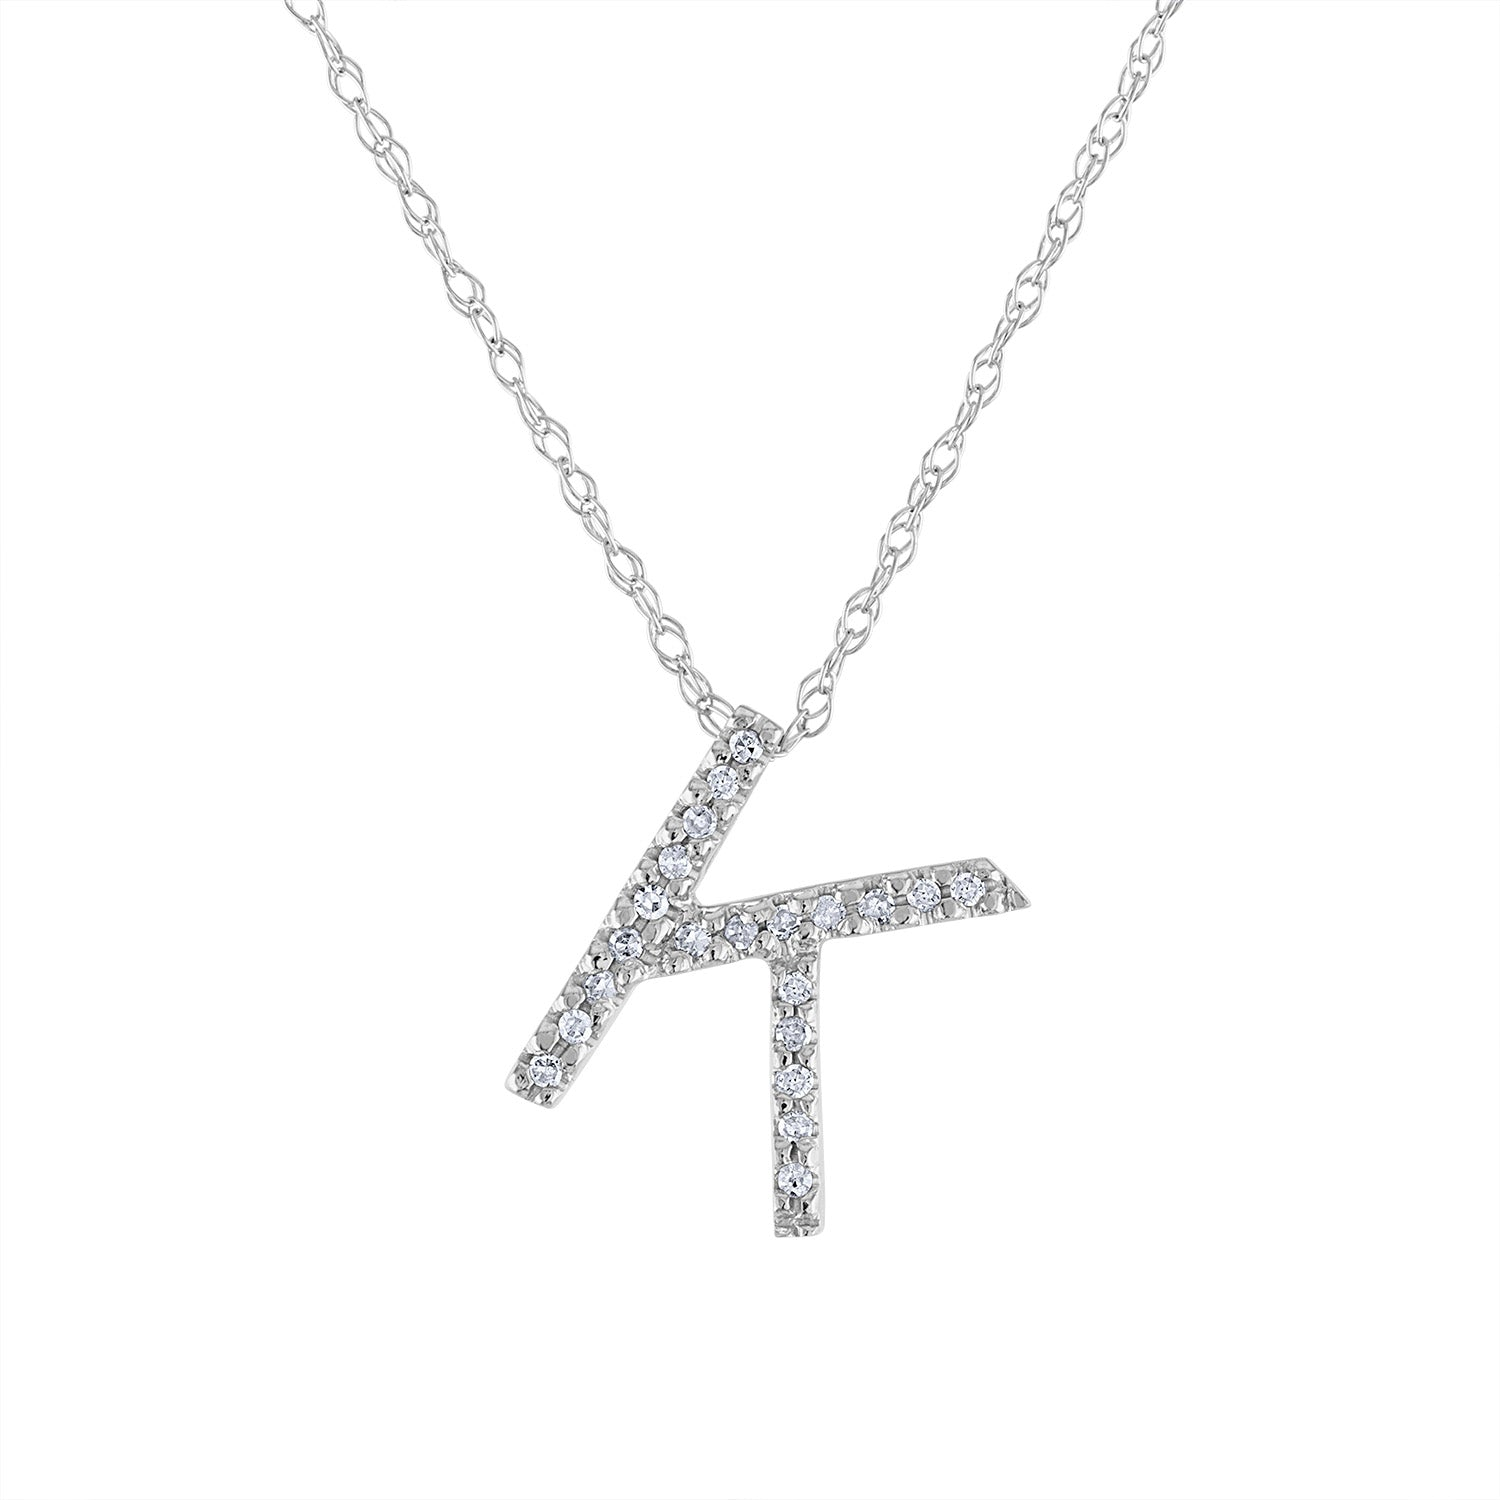 14k White Gold diamond initial K necklace